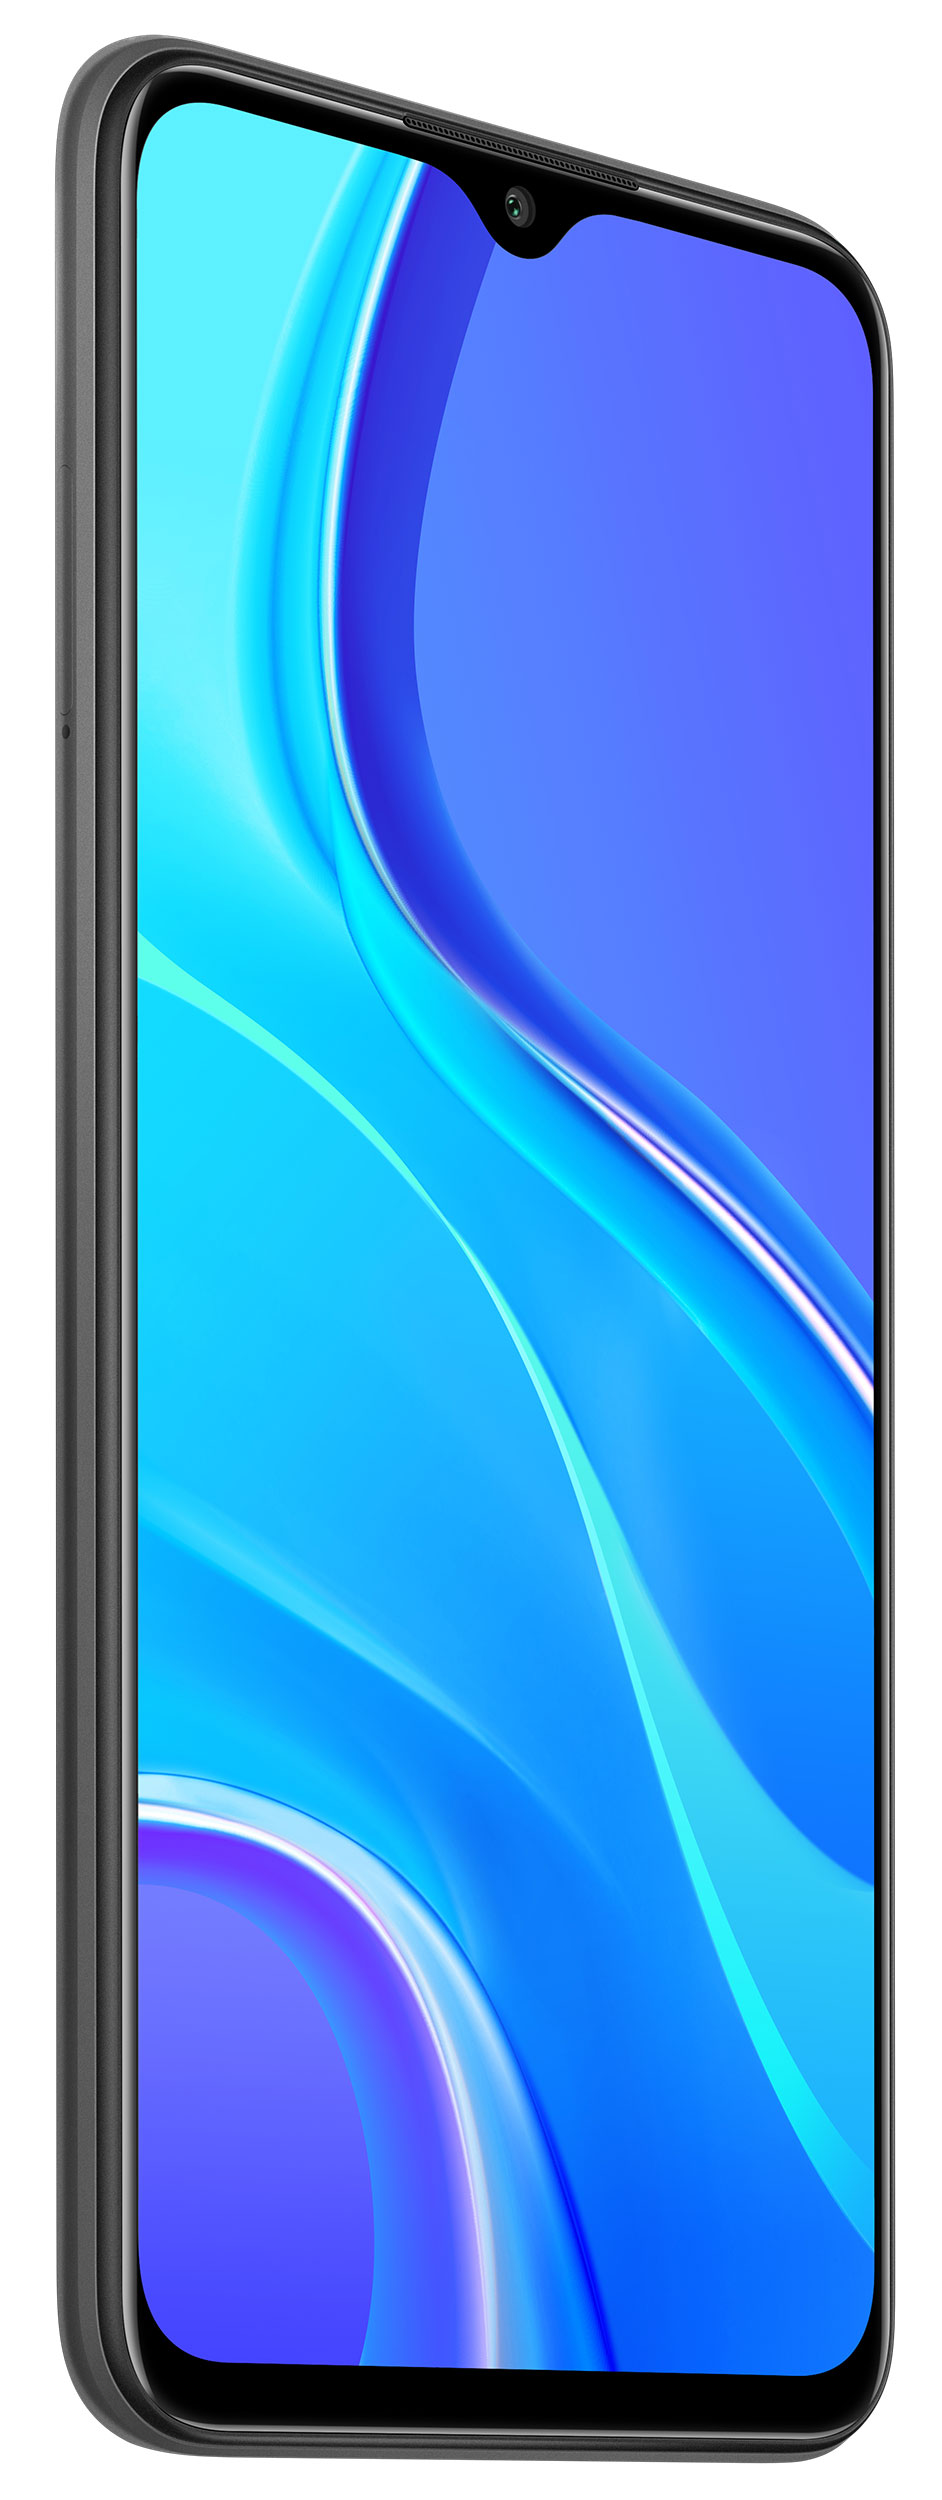 Smartphone Redmi 9 - Global - 4+64GB - Gri